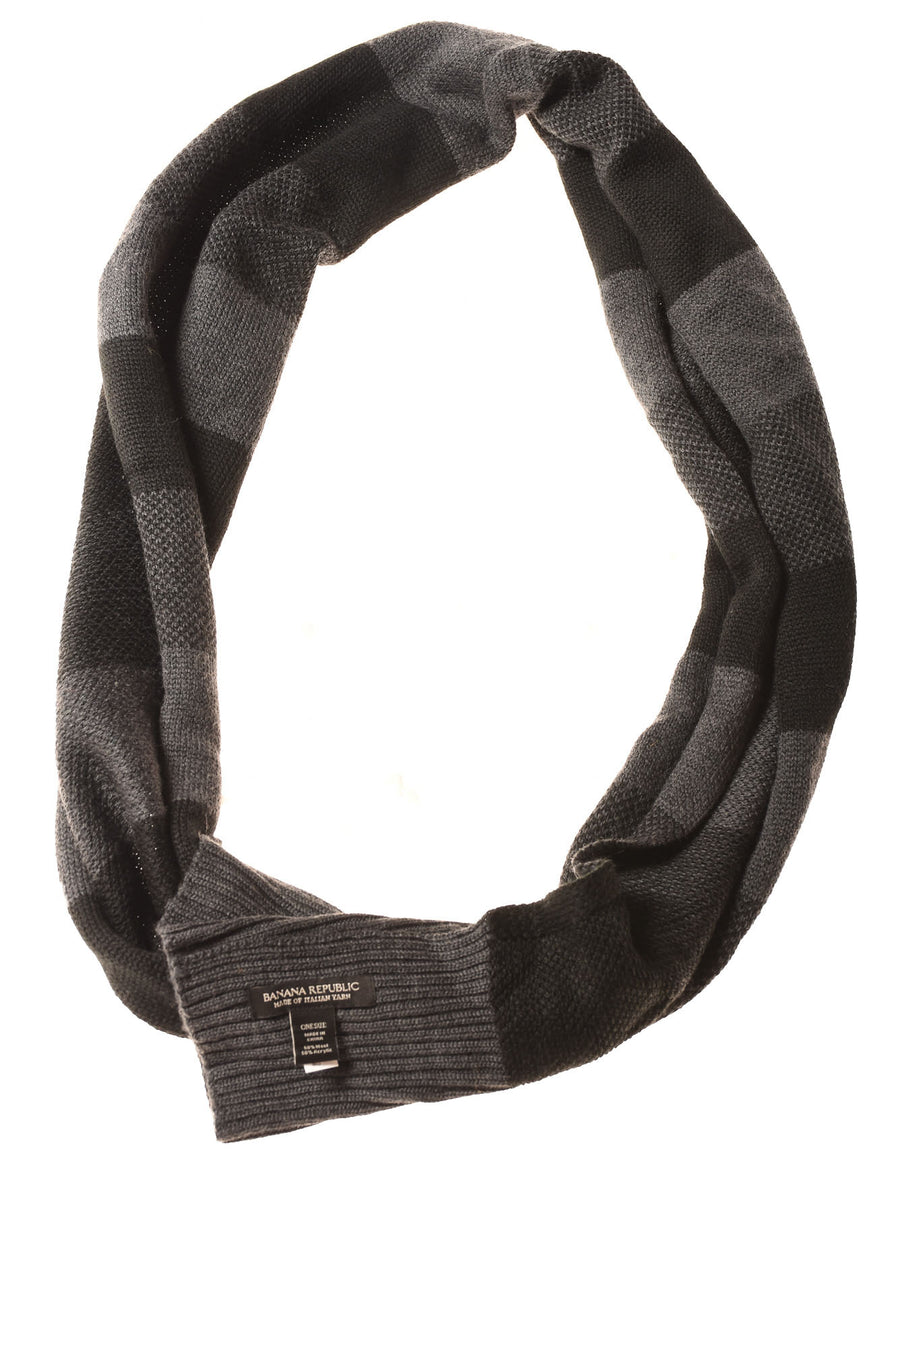 USED Banana Republic Men's Scarf One Size Black & Gray / Striped